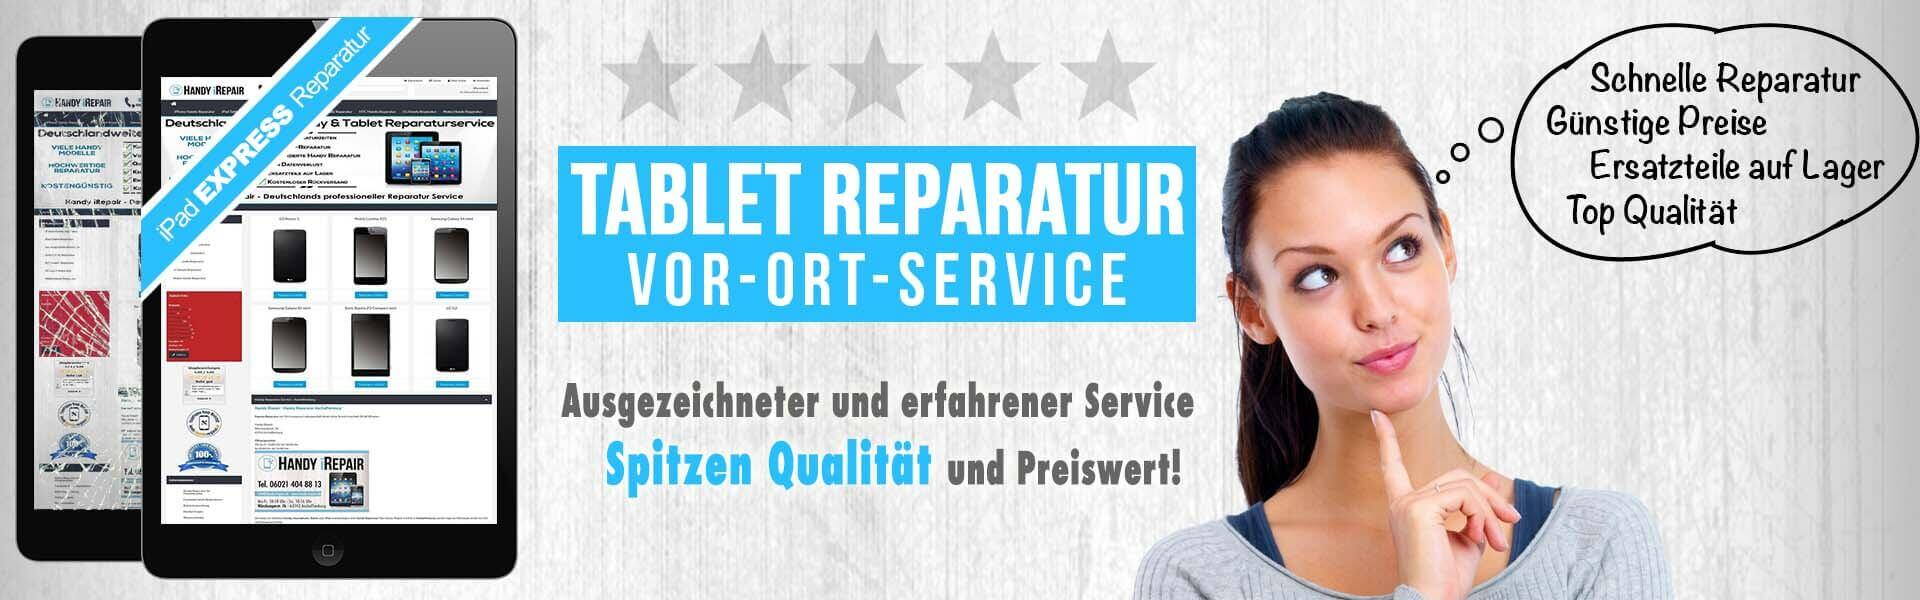 Handy iRepair - iPad & Tablet Reparatur